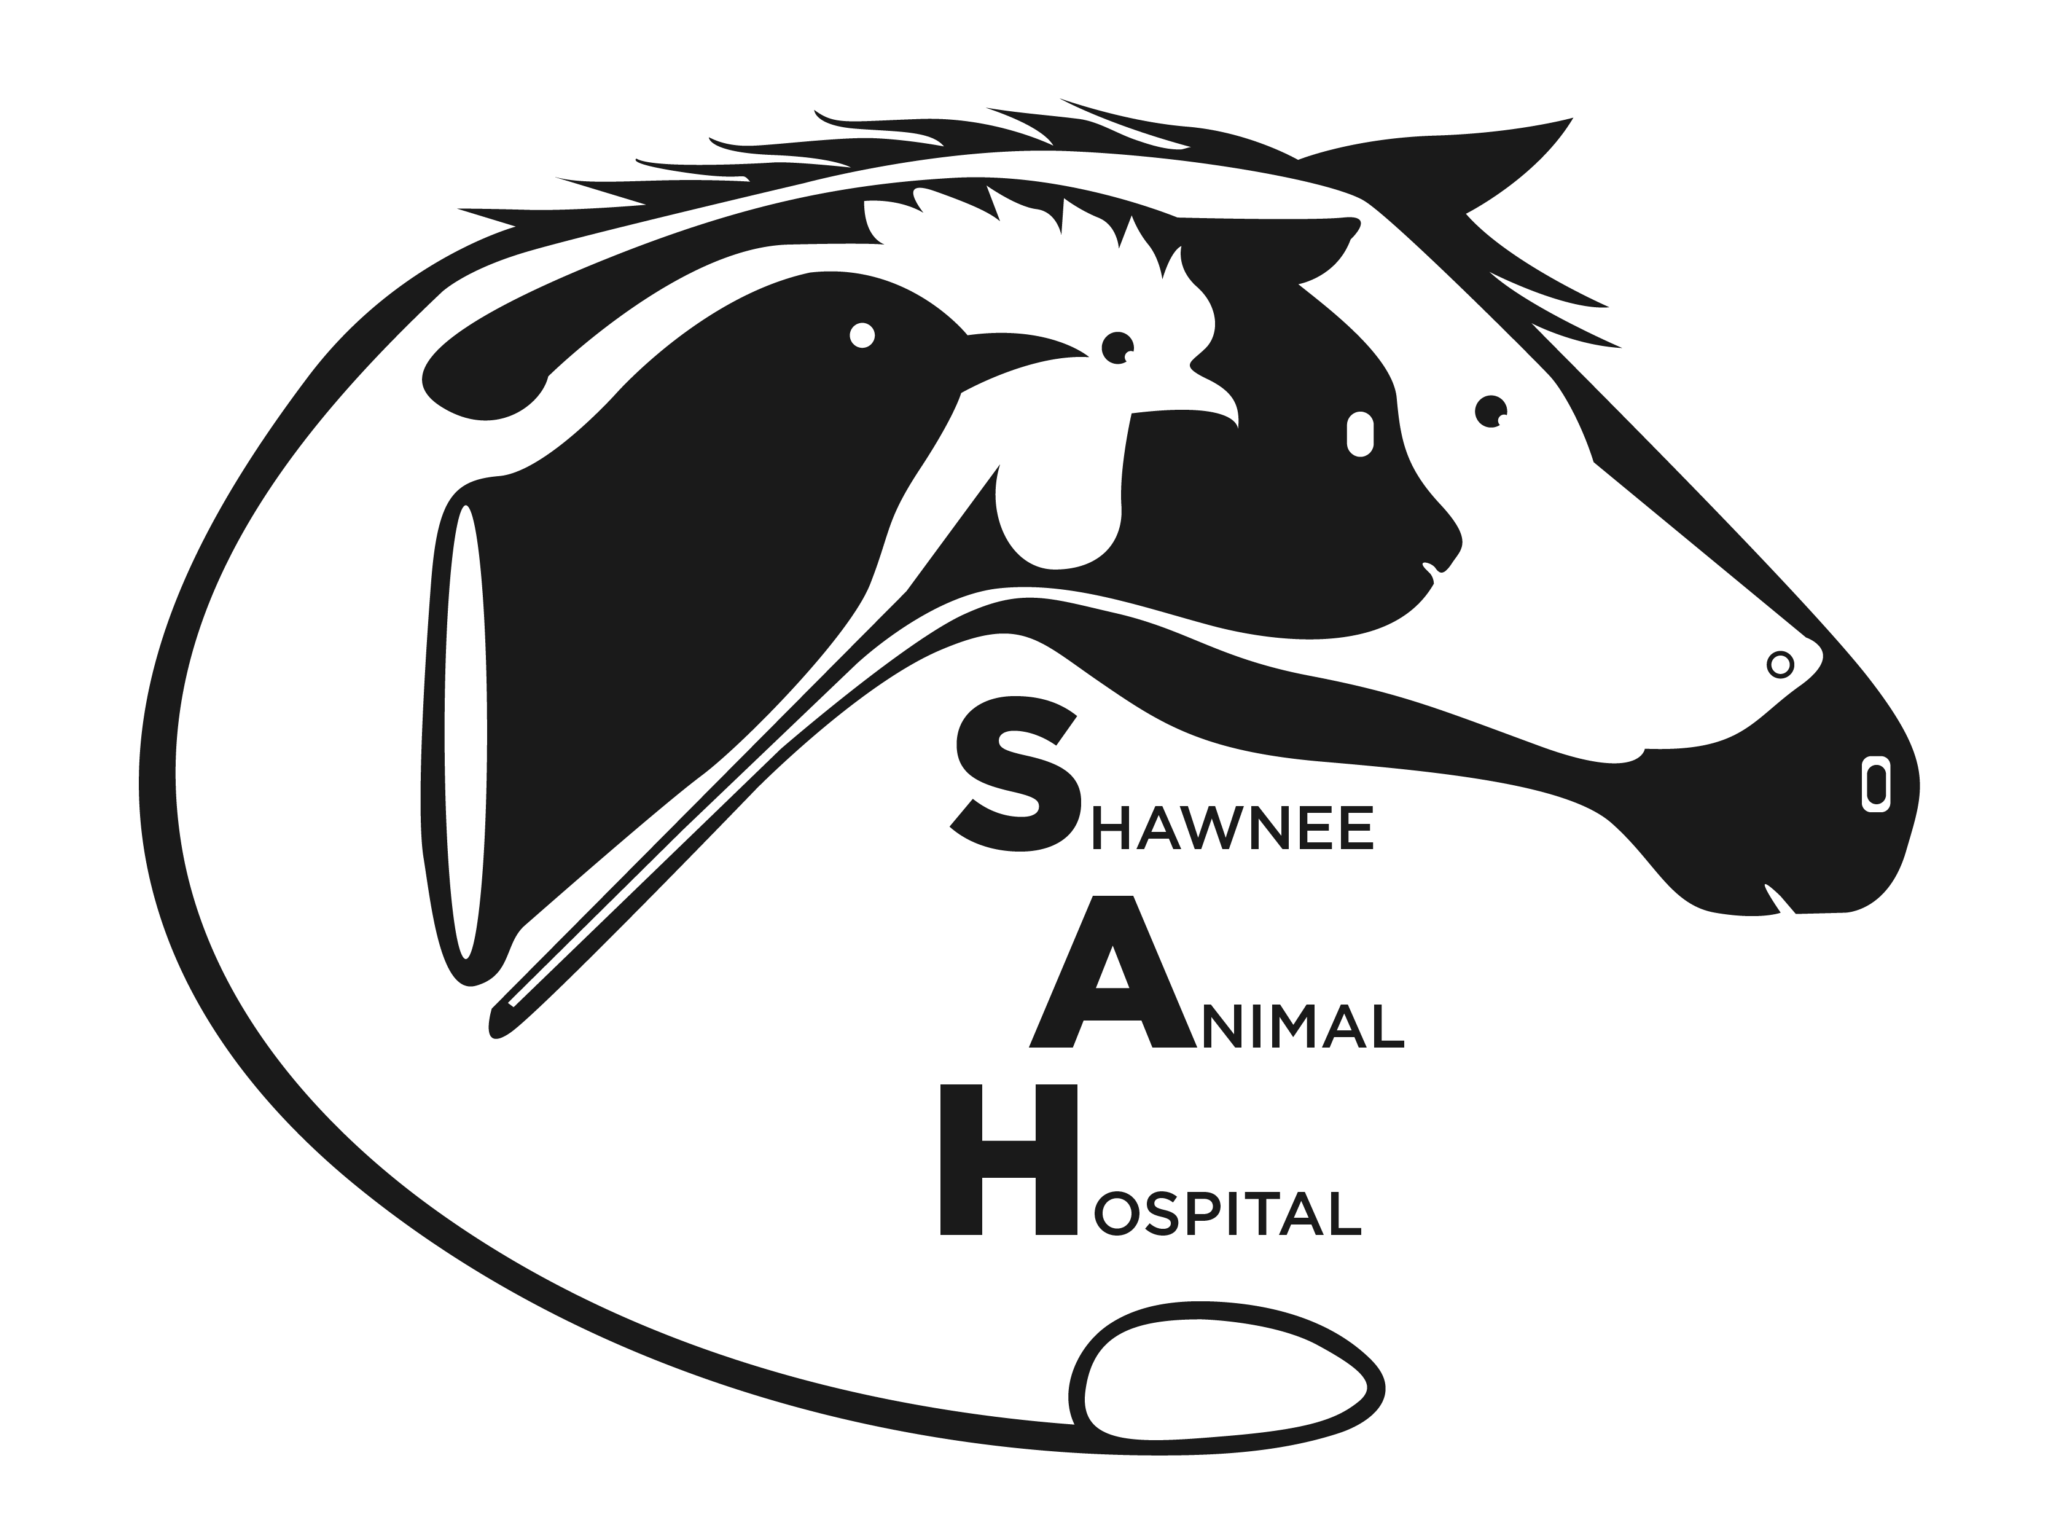 Shawnee Animal Hospital logo